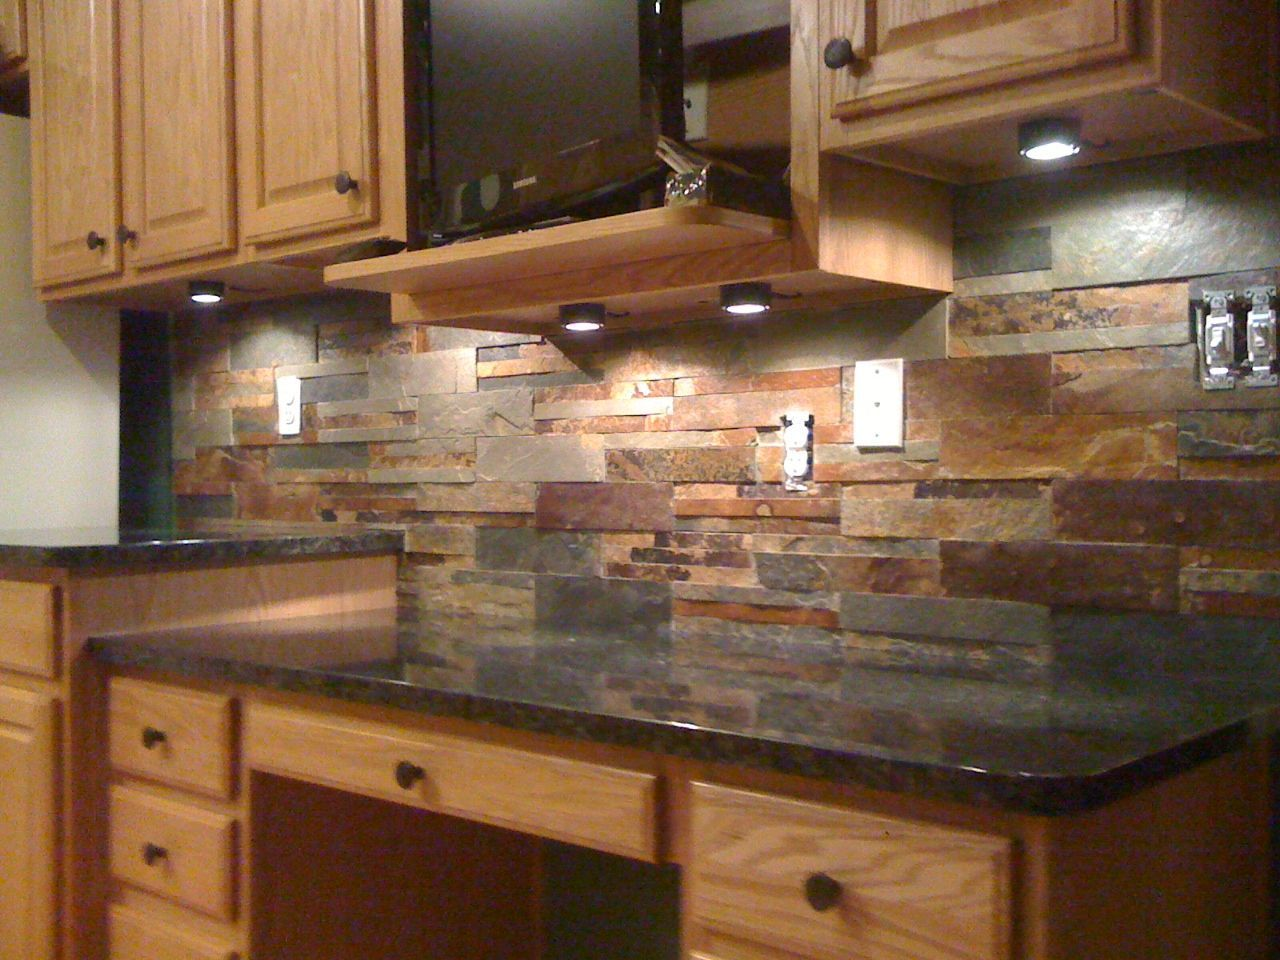 Ideas For Backsplash With Black Granite Countertops Google Search Rustic Kitchen Design Kitchen Inspirations Eclectic Kitchen